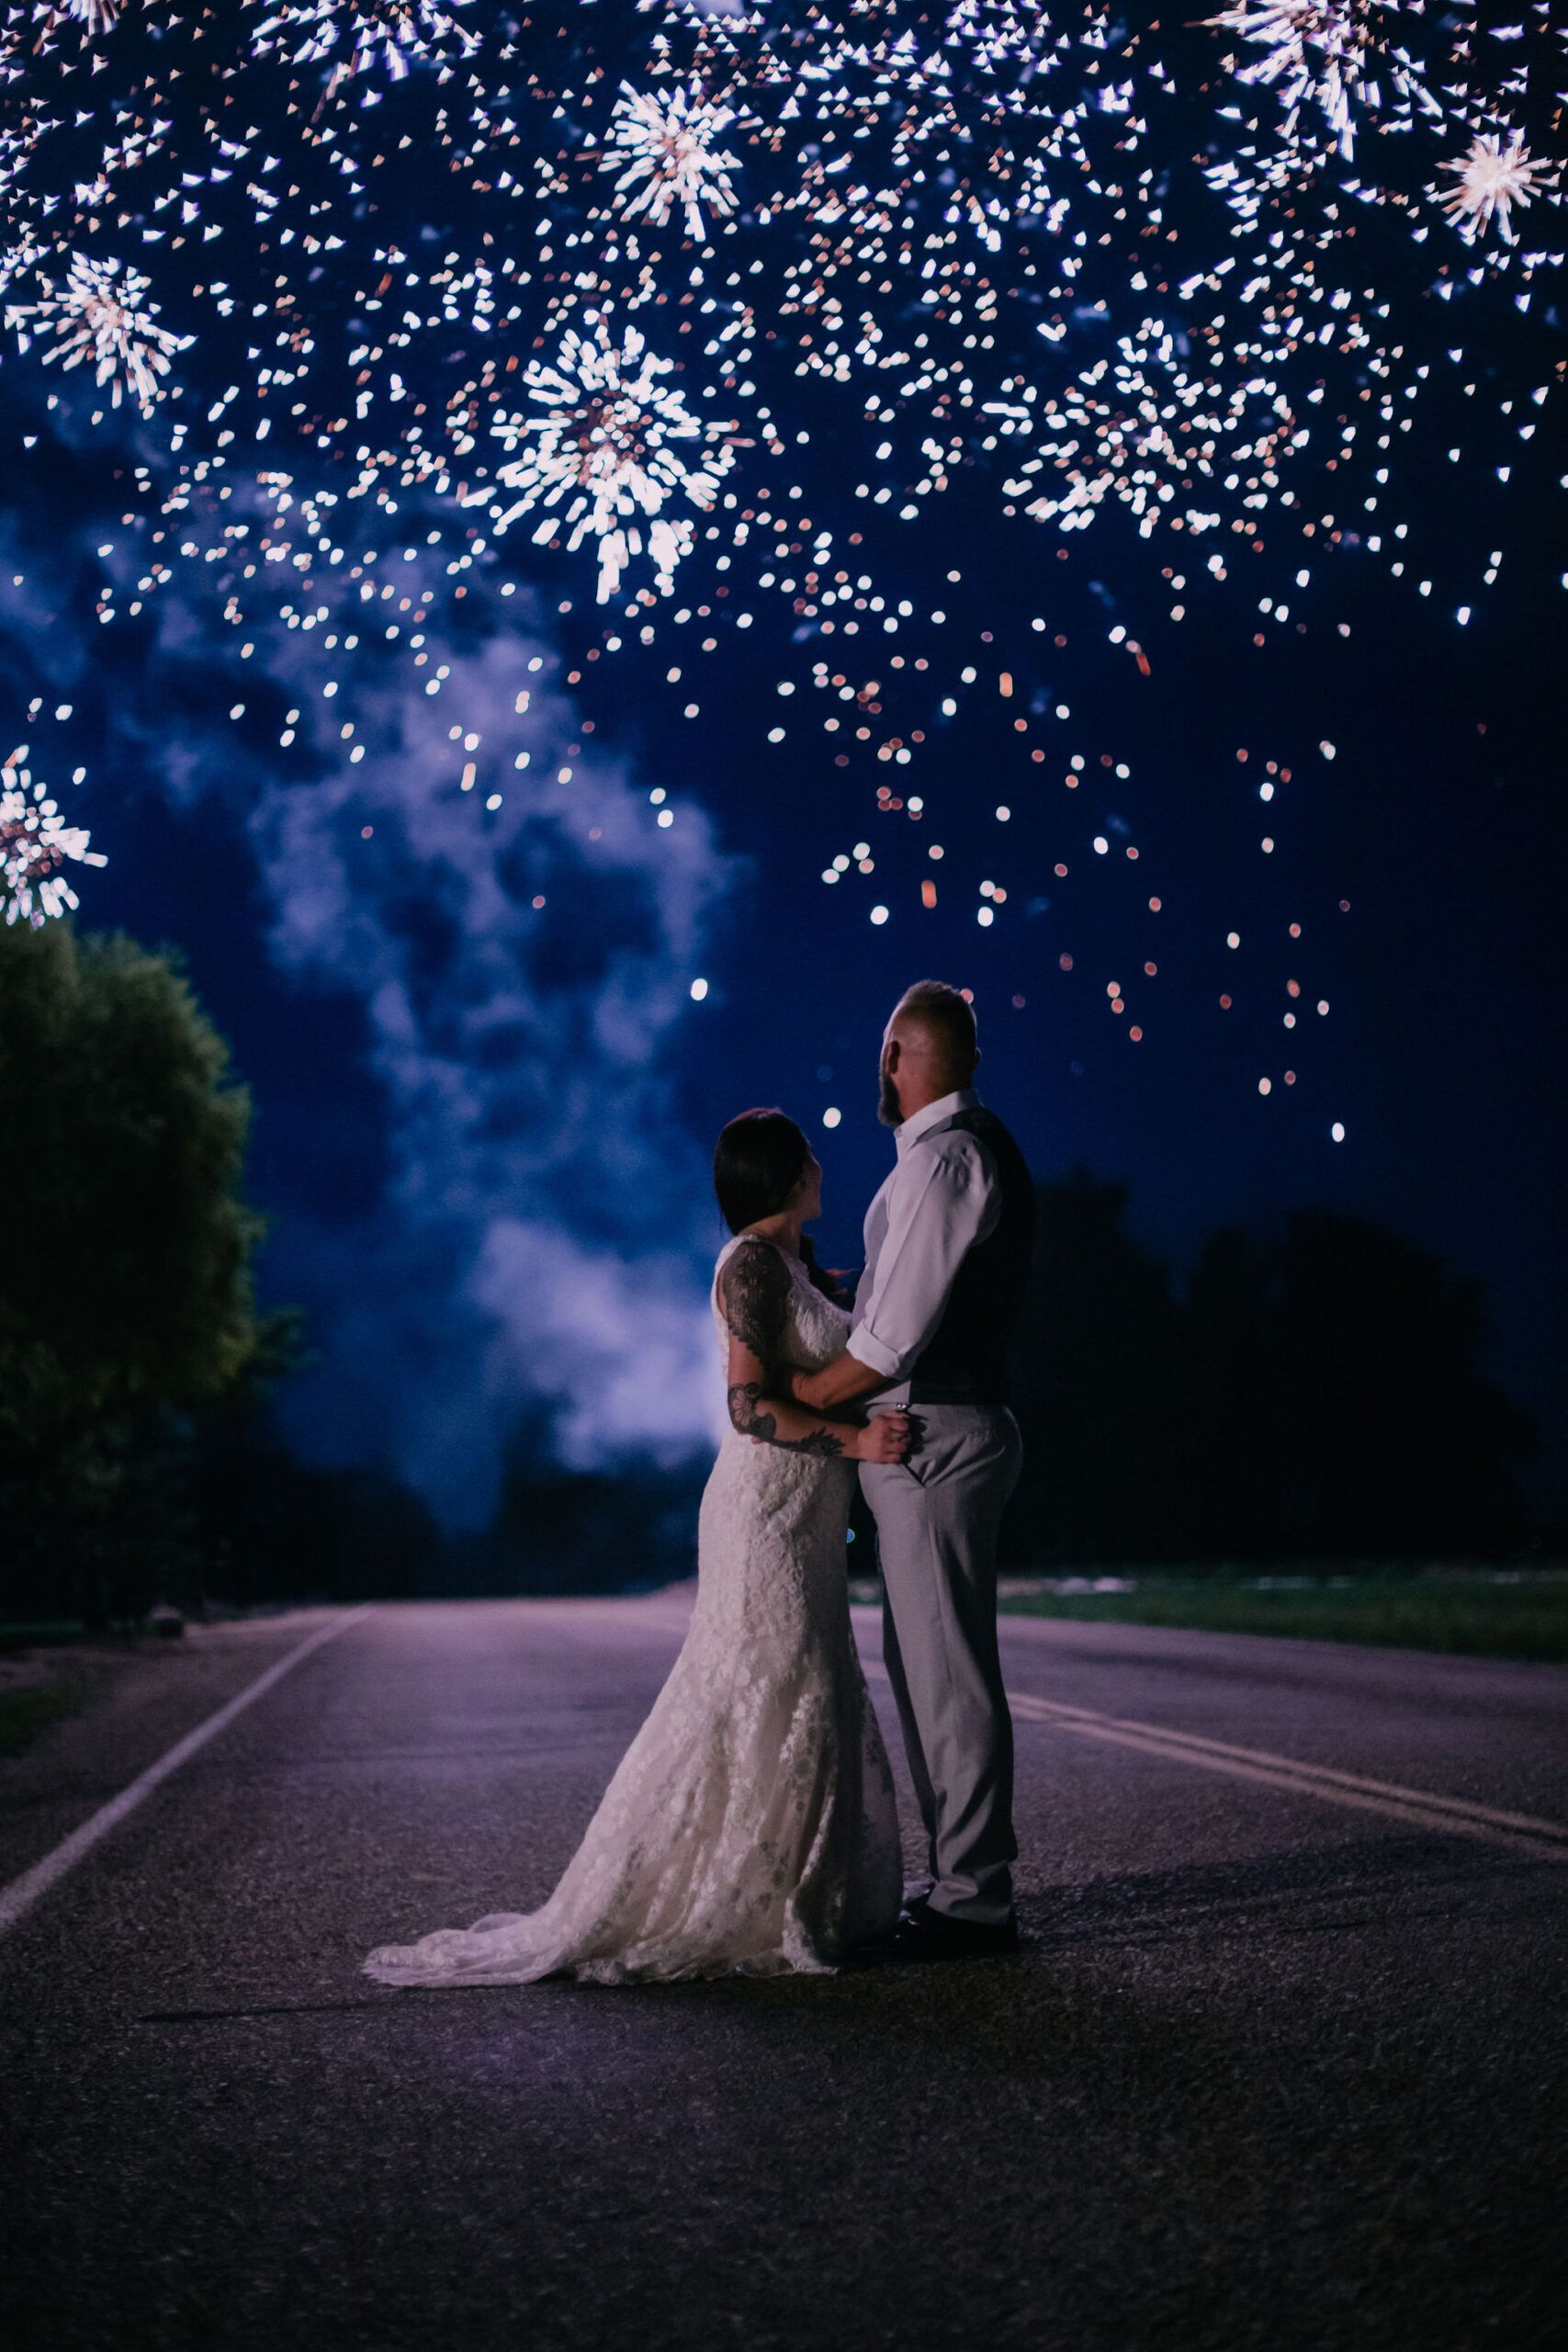 Summer Night Wedding 2 See Photography In 2020 Wedding Fireworks Wedding Photography Wedding Night